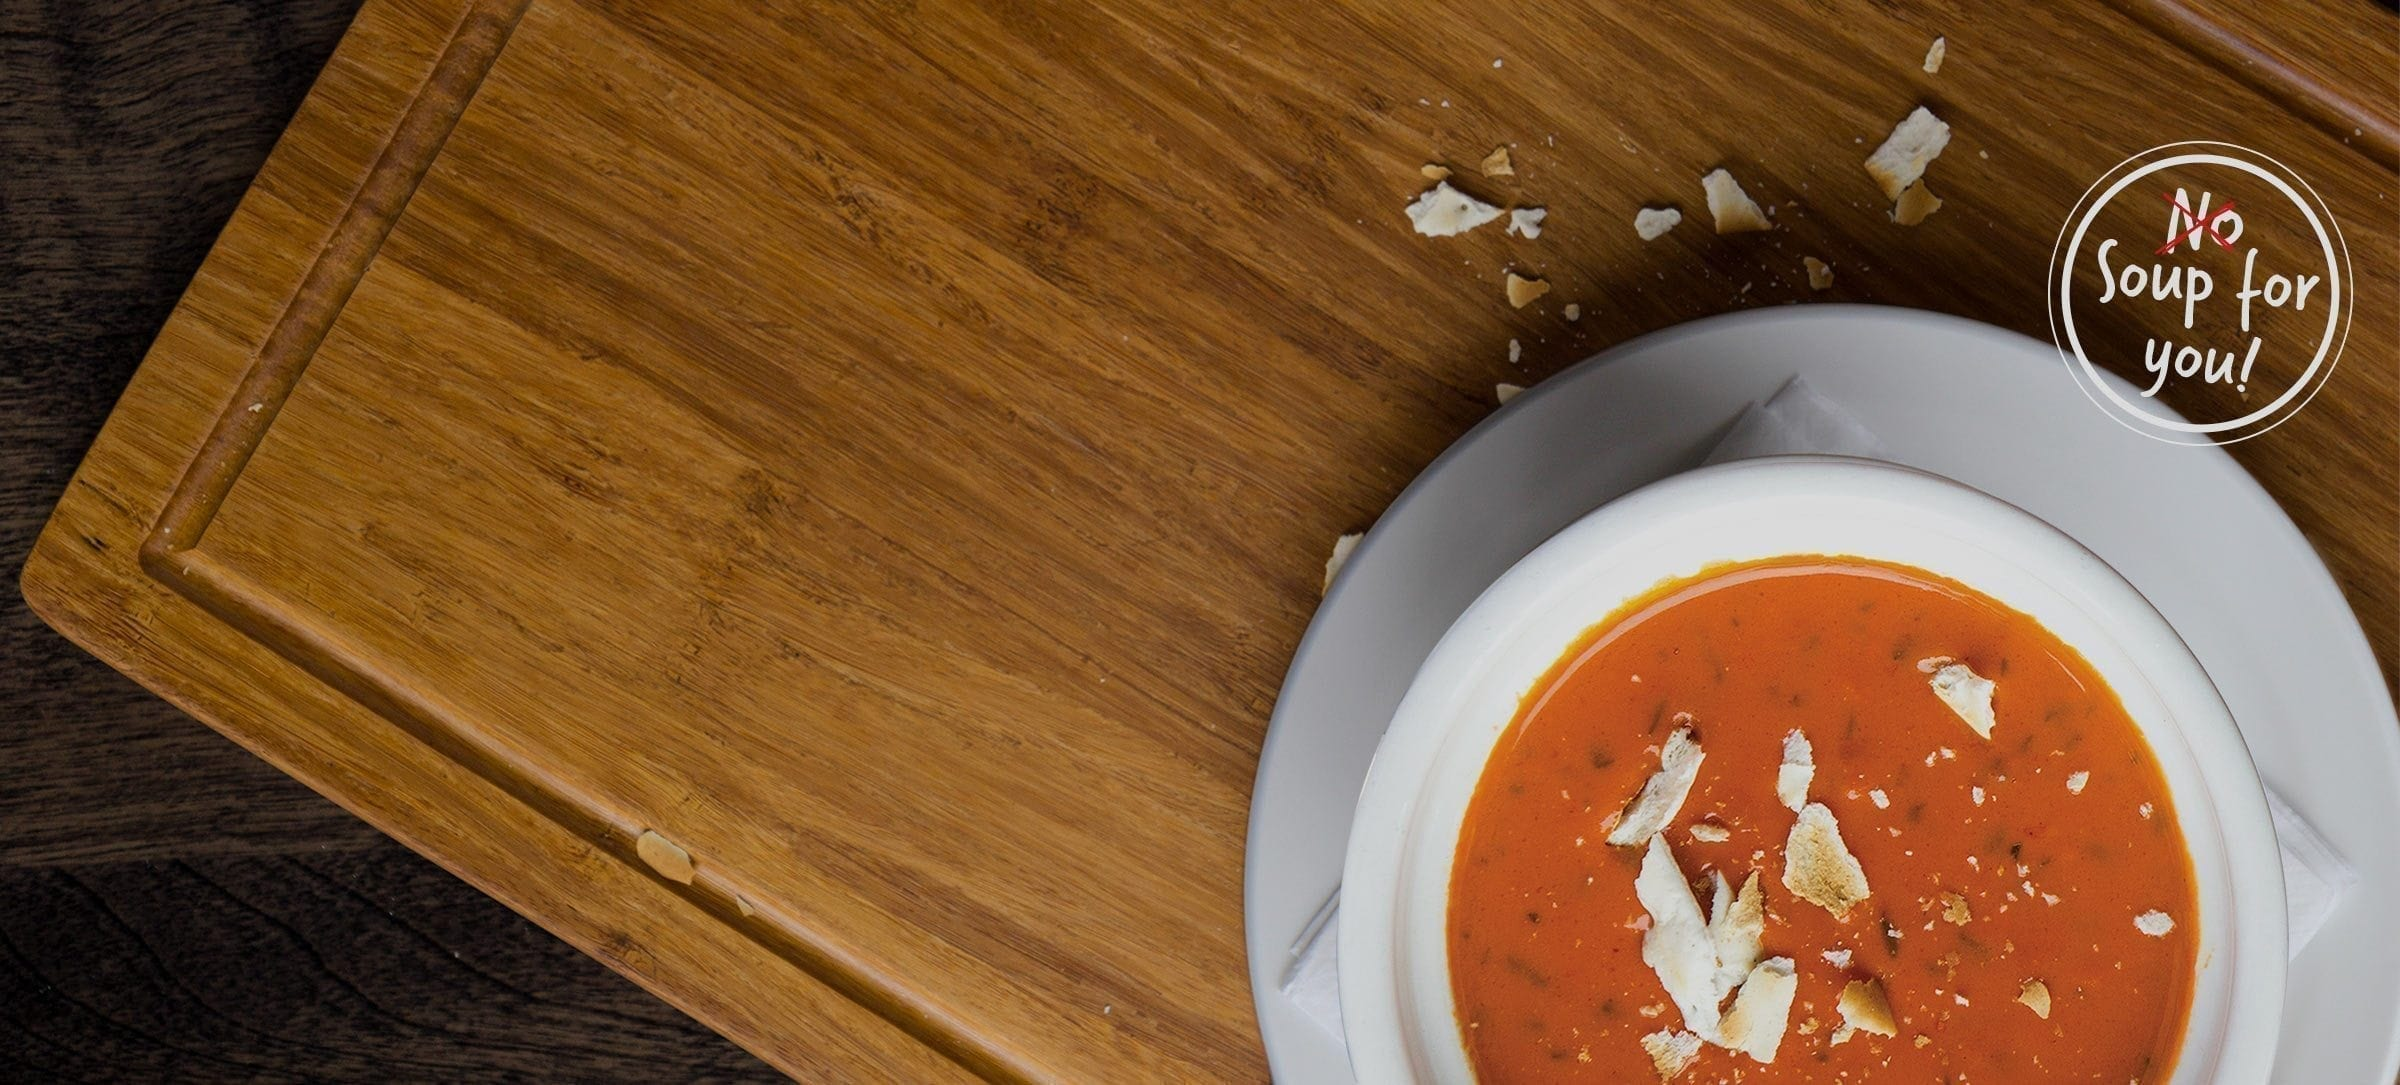 Soups On! All soups! All day, all the time!